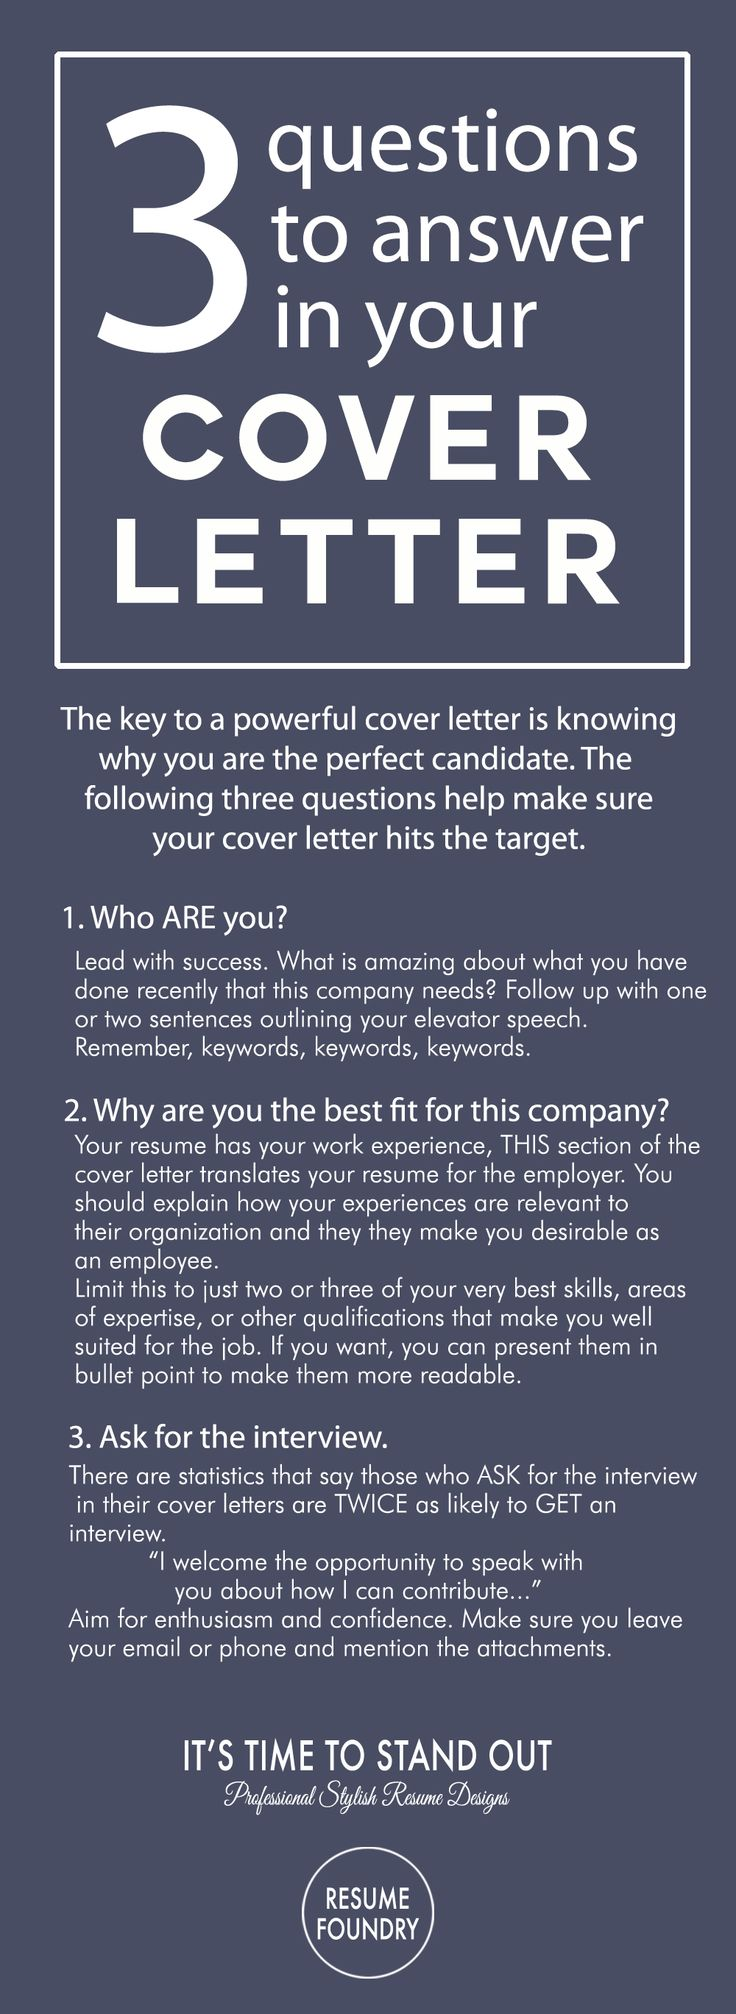 cover letter tips outline how to write a cover letter - Help Making A Resume For Free